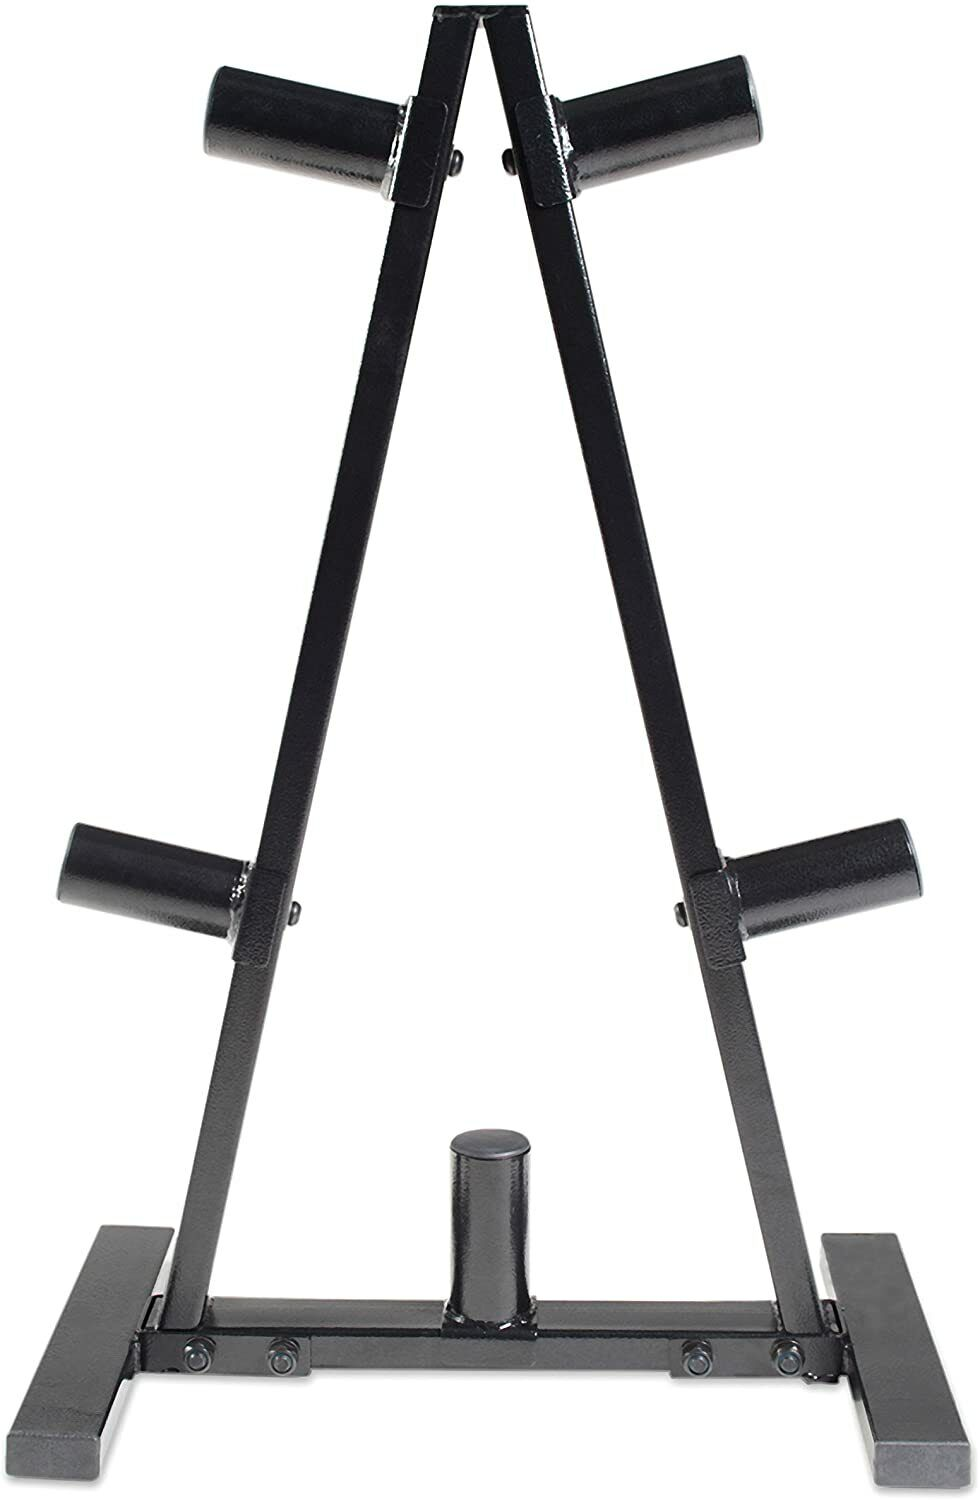 Olympic Plate Tree - CAP Barbell A-Frame Olympic Weight Rack